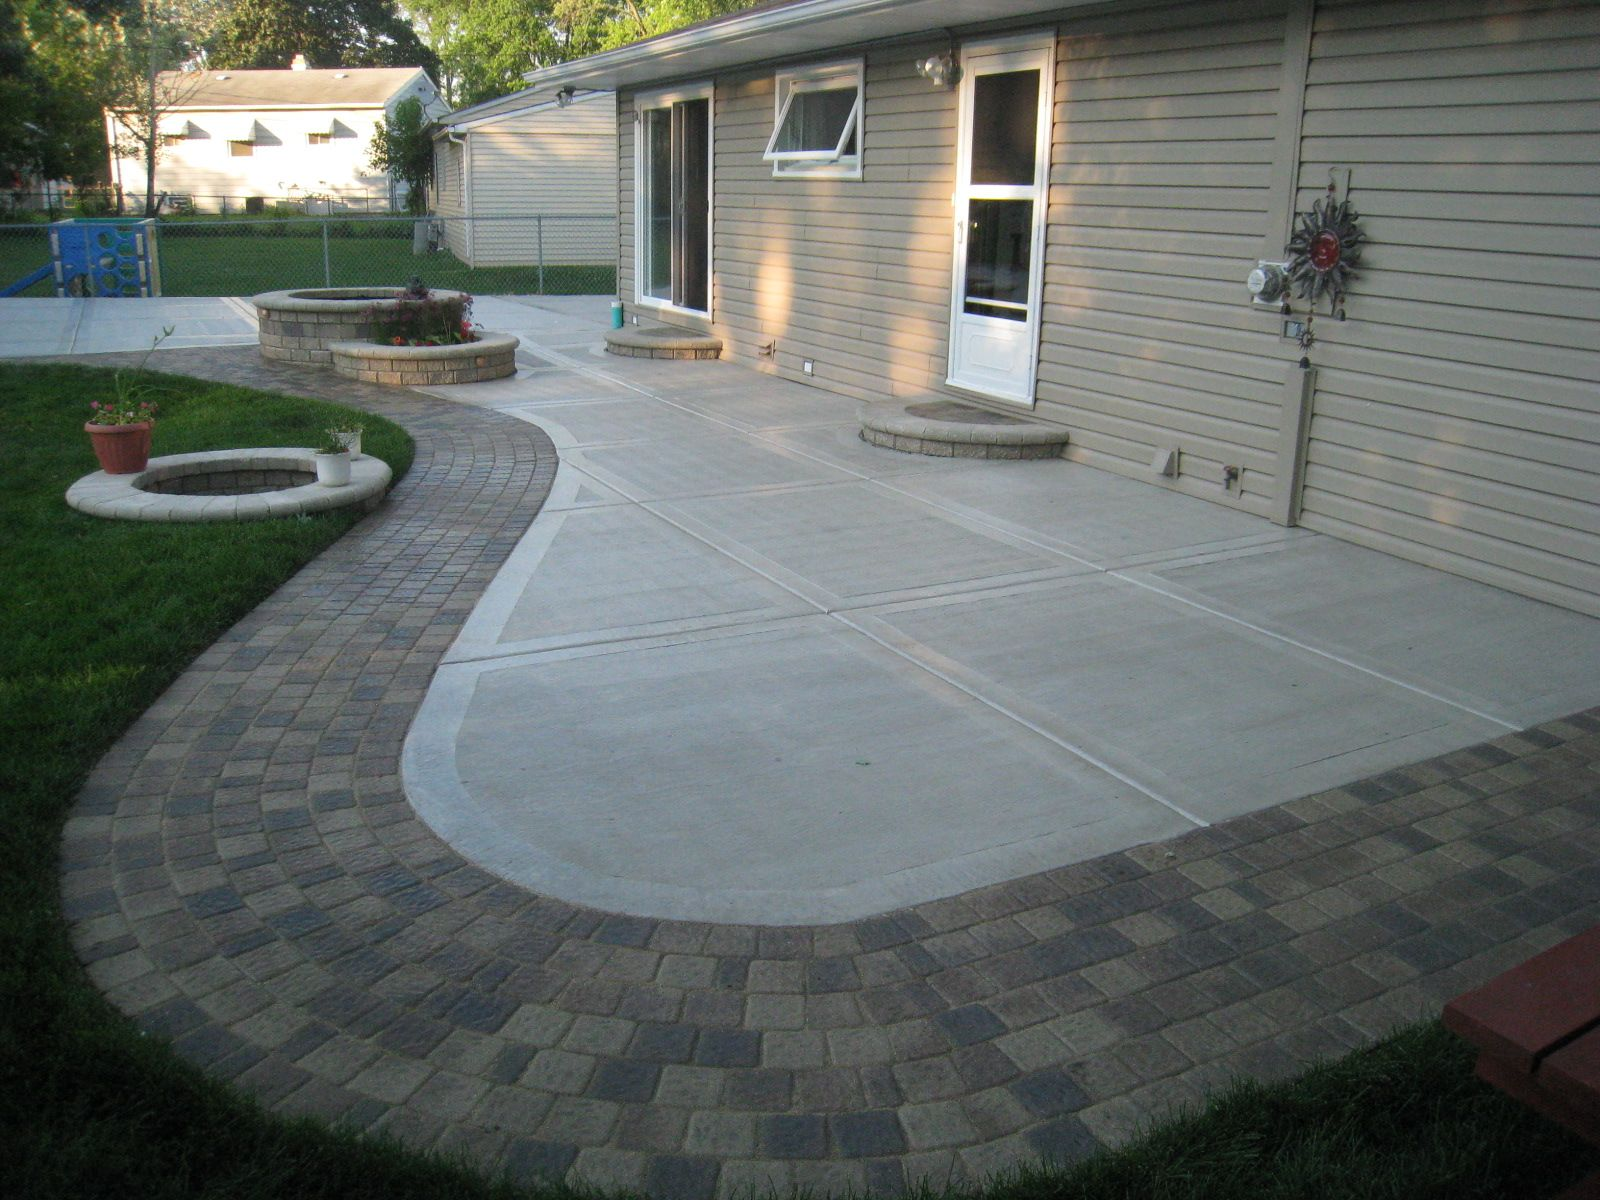 pavered also and gray or in designs block beauteous backyard ideas pit with outdoor stamped inspiration fire patio cement walkers small landscaping gardening concrete decorating furnishing fascinating natural paving